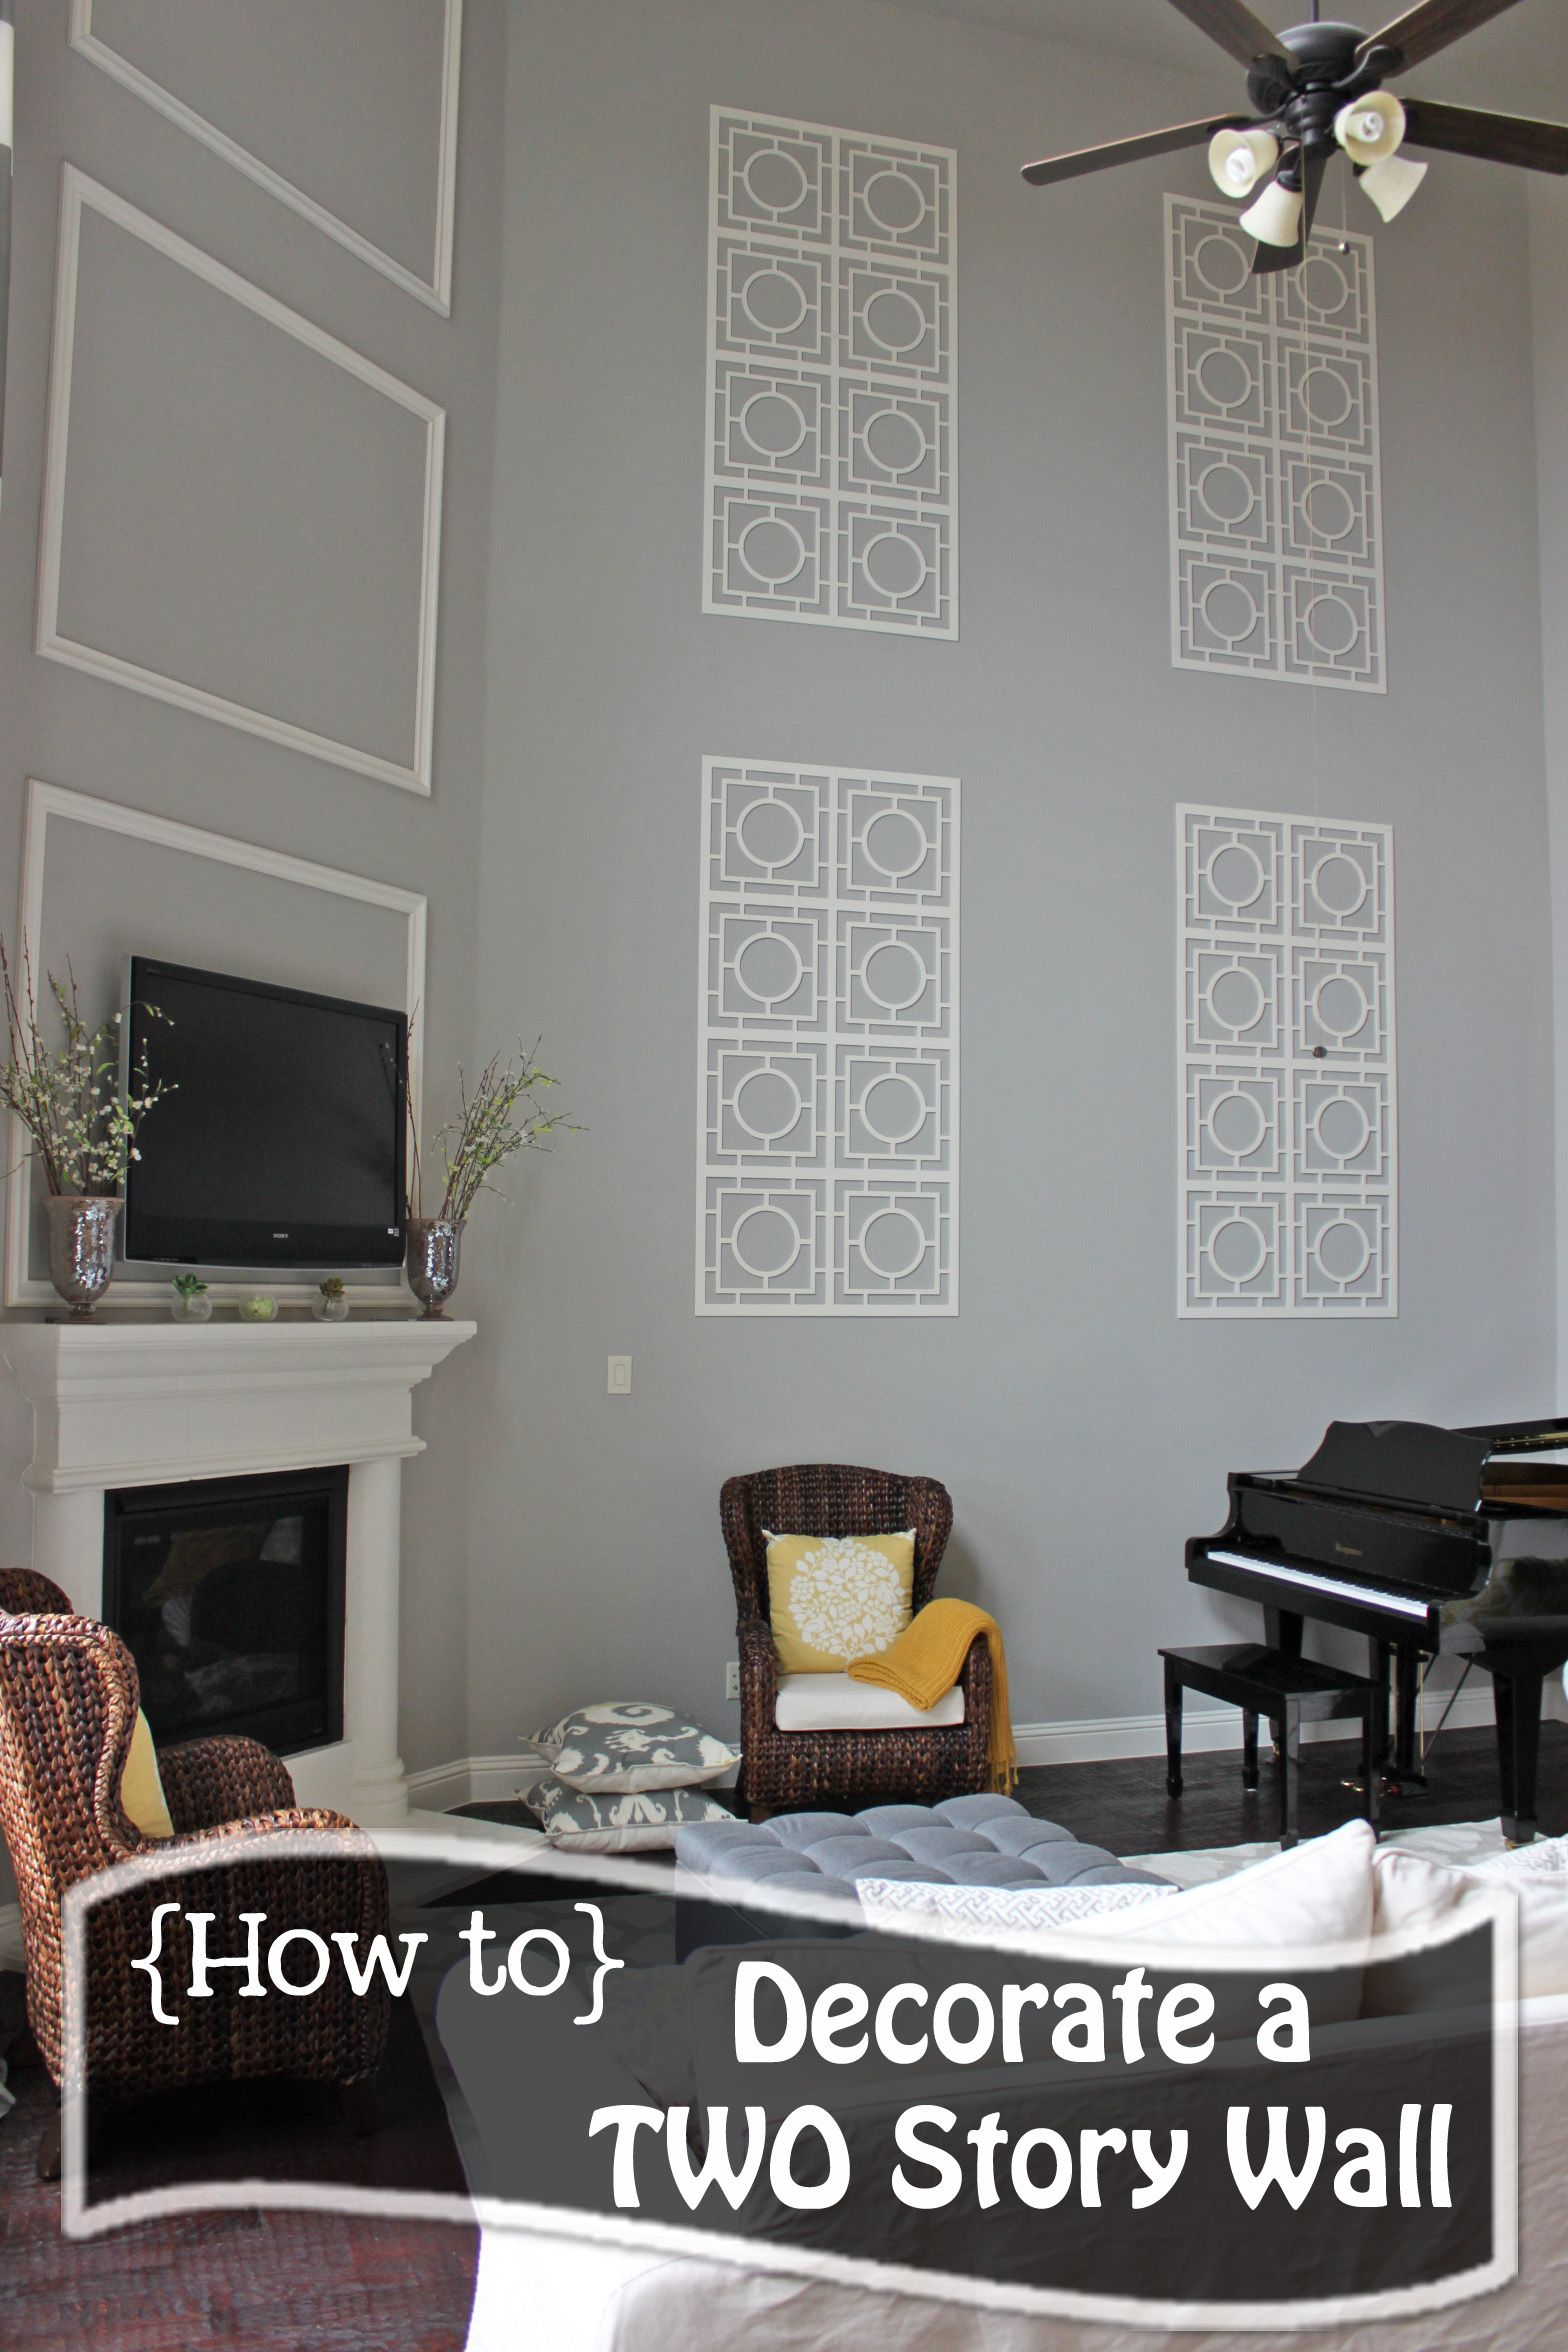 Big Wall Decorating Ideas how to decorate a two story wall! what to do with those crazy tall